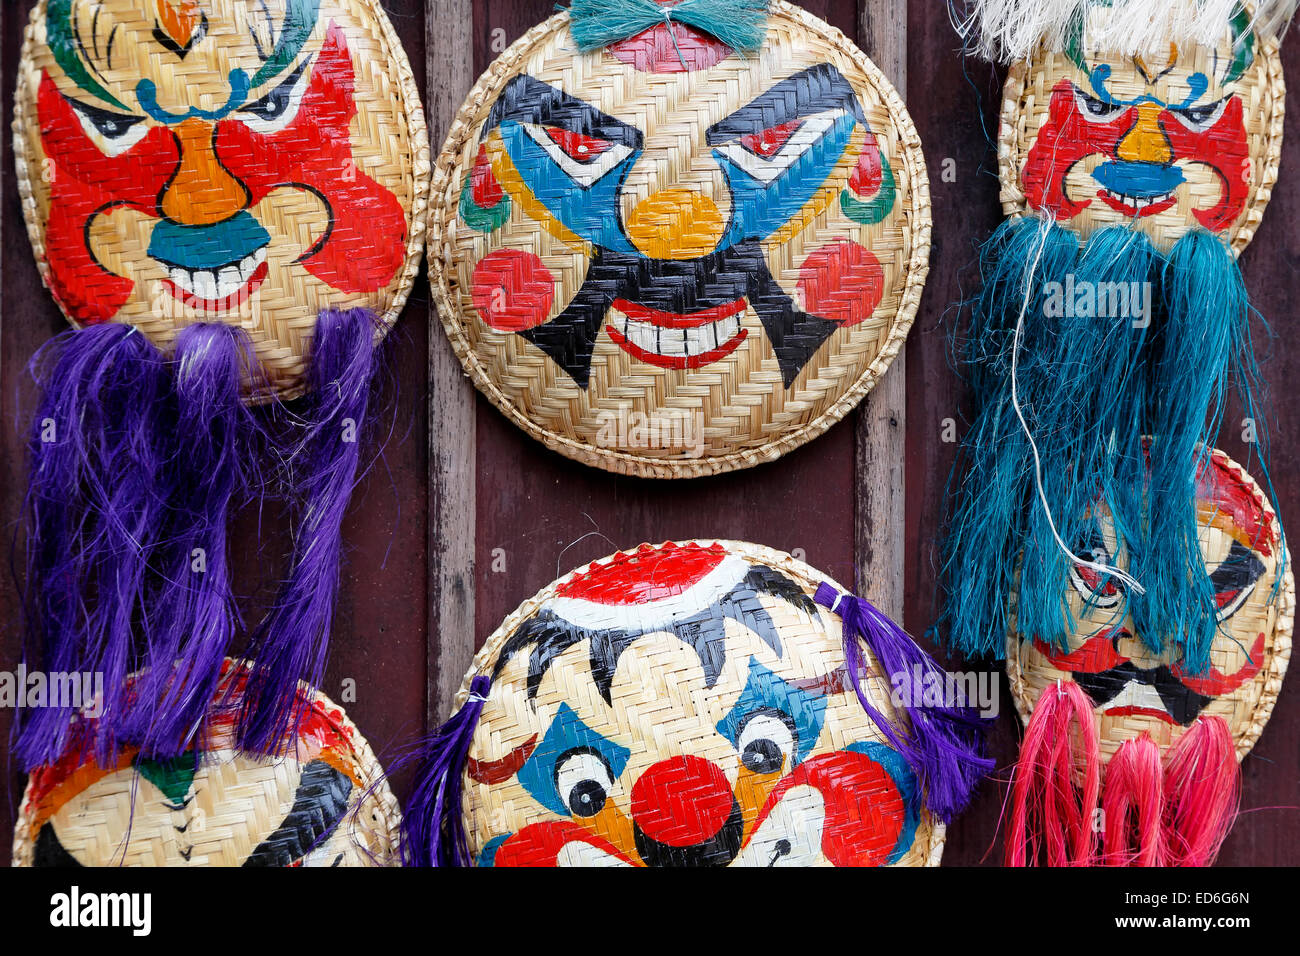 Les masques traditionnels vietnamiens pour la vente, Temple de la littérature, Hanoi, Vietnam Photo Stock